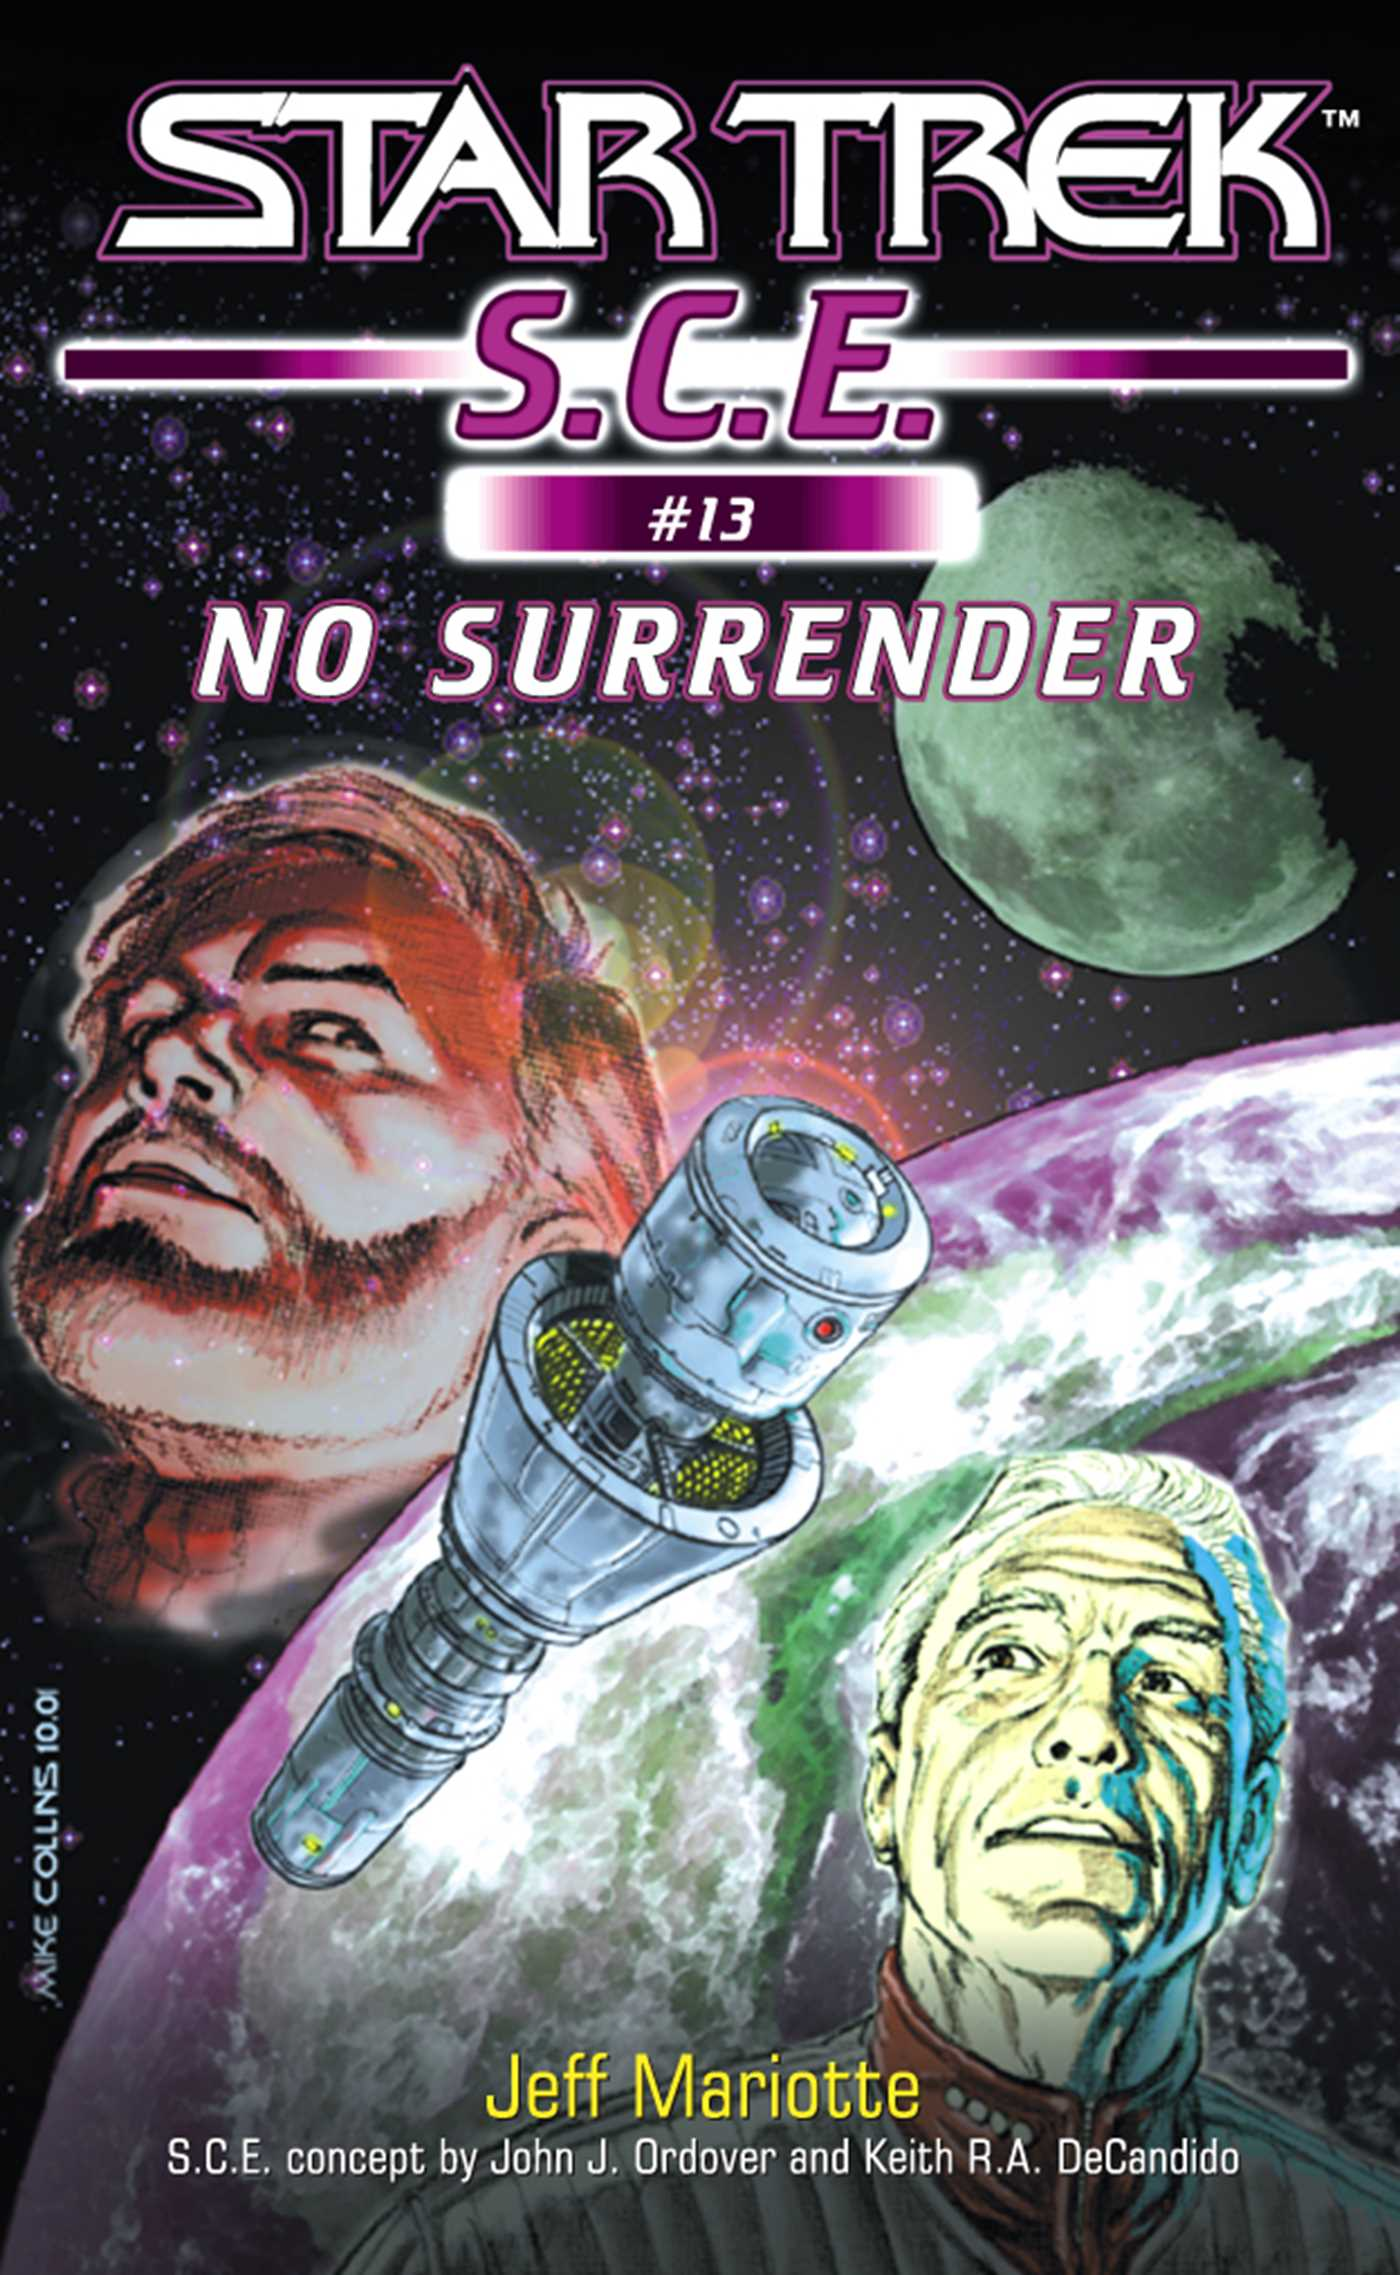 Star-trek-no-surrender-9780743428804_hr